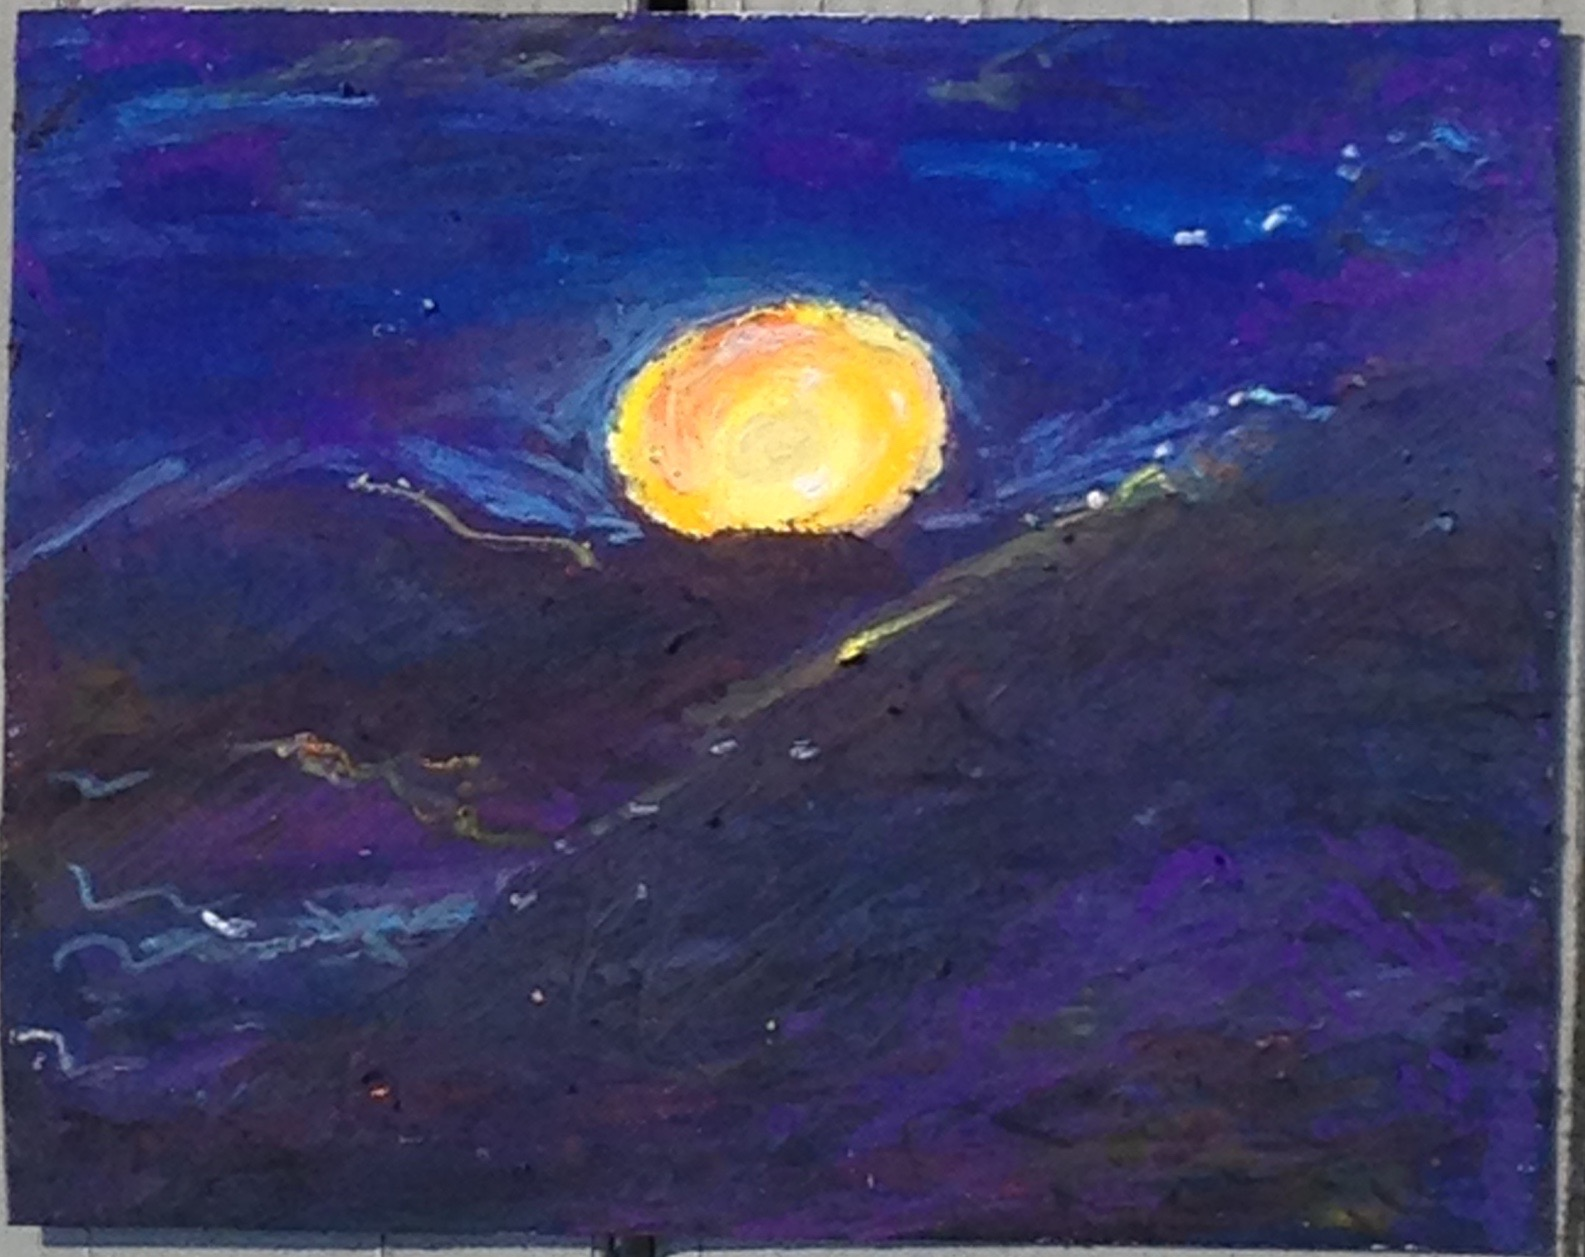 Image 1. Sun setting behind mountains. Oil pastels on paper. April, 2013. Painting and photo by author, uploaded October 25, 2015.